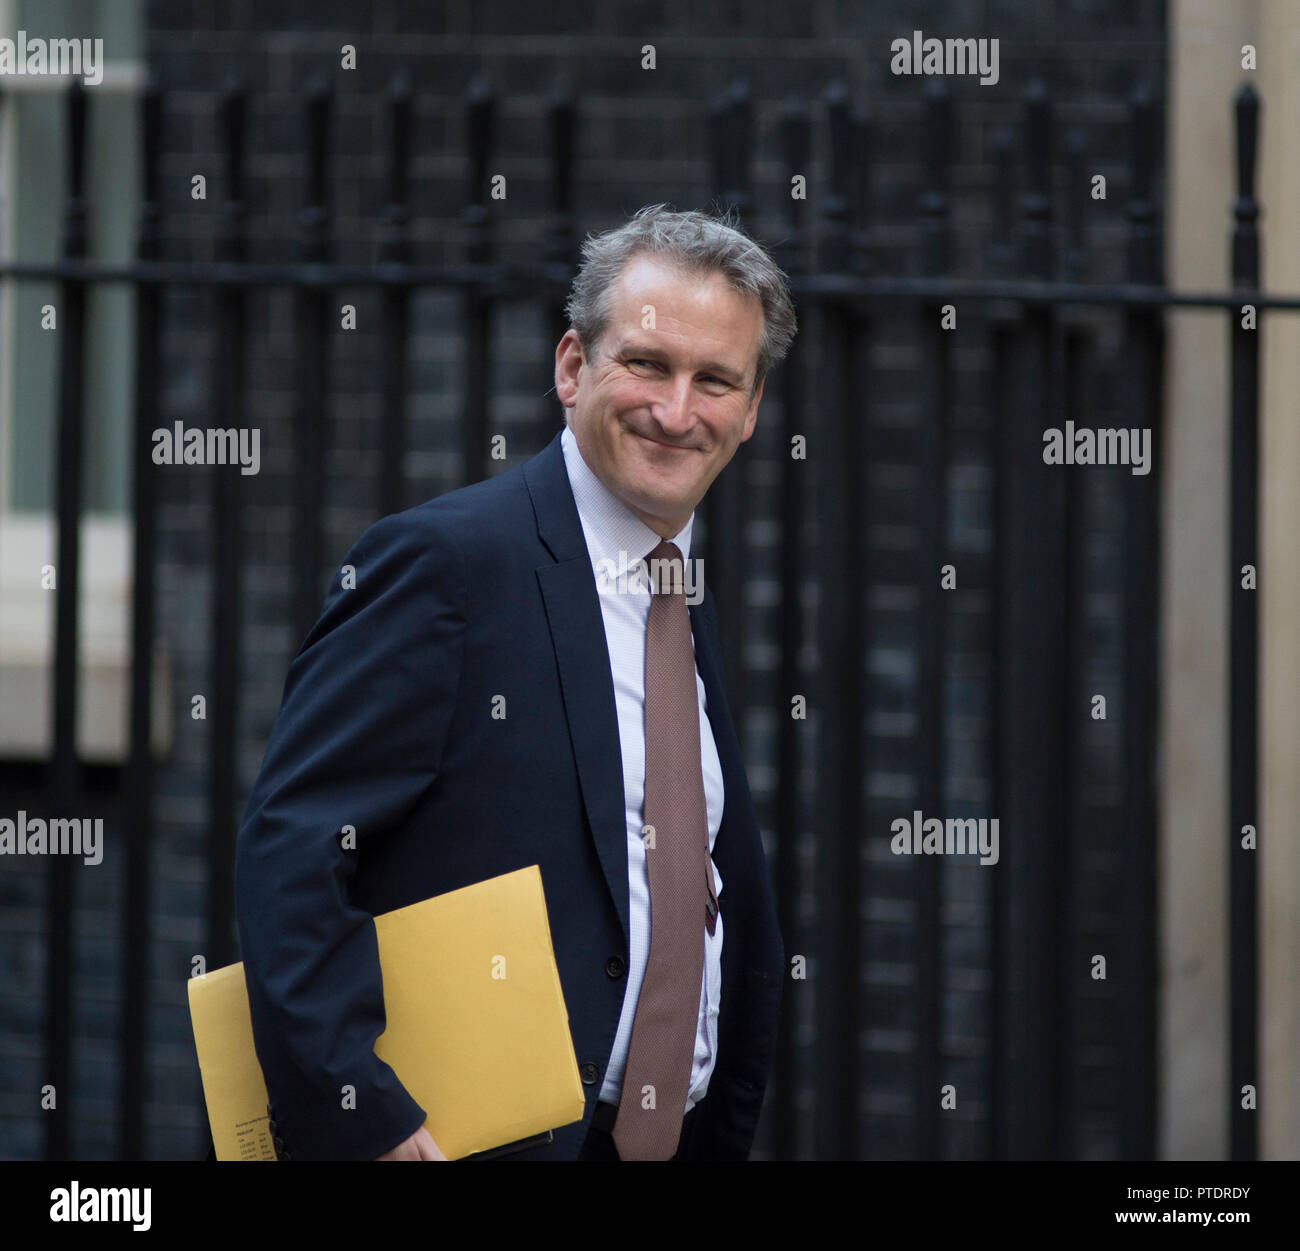 Downing Street, London, UK. 9 October 2018. Damian Hinds, Secretary of State for Education, in Downing Street for weekly cabinet meeting. Credit: Malcolm Park/Alamy Live News. - Stock Image